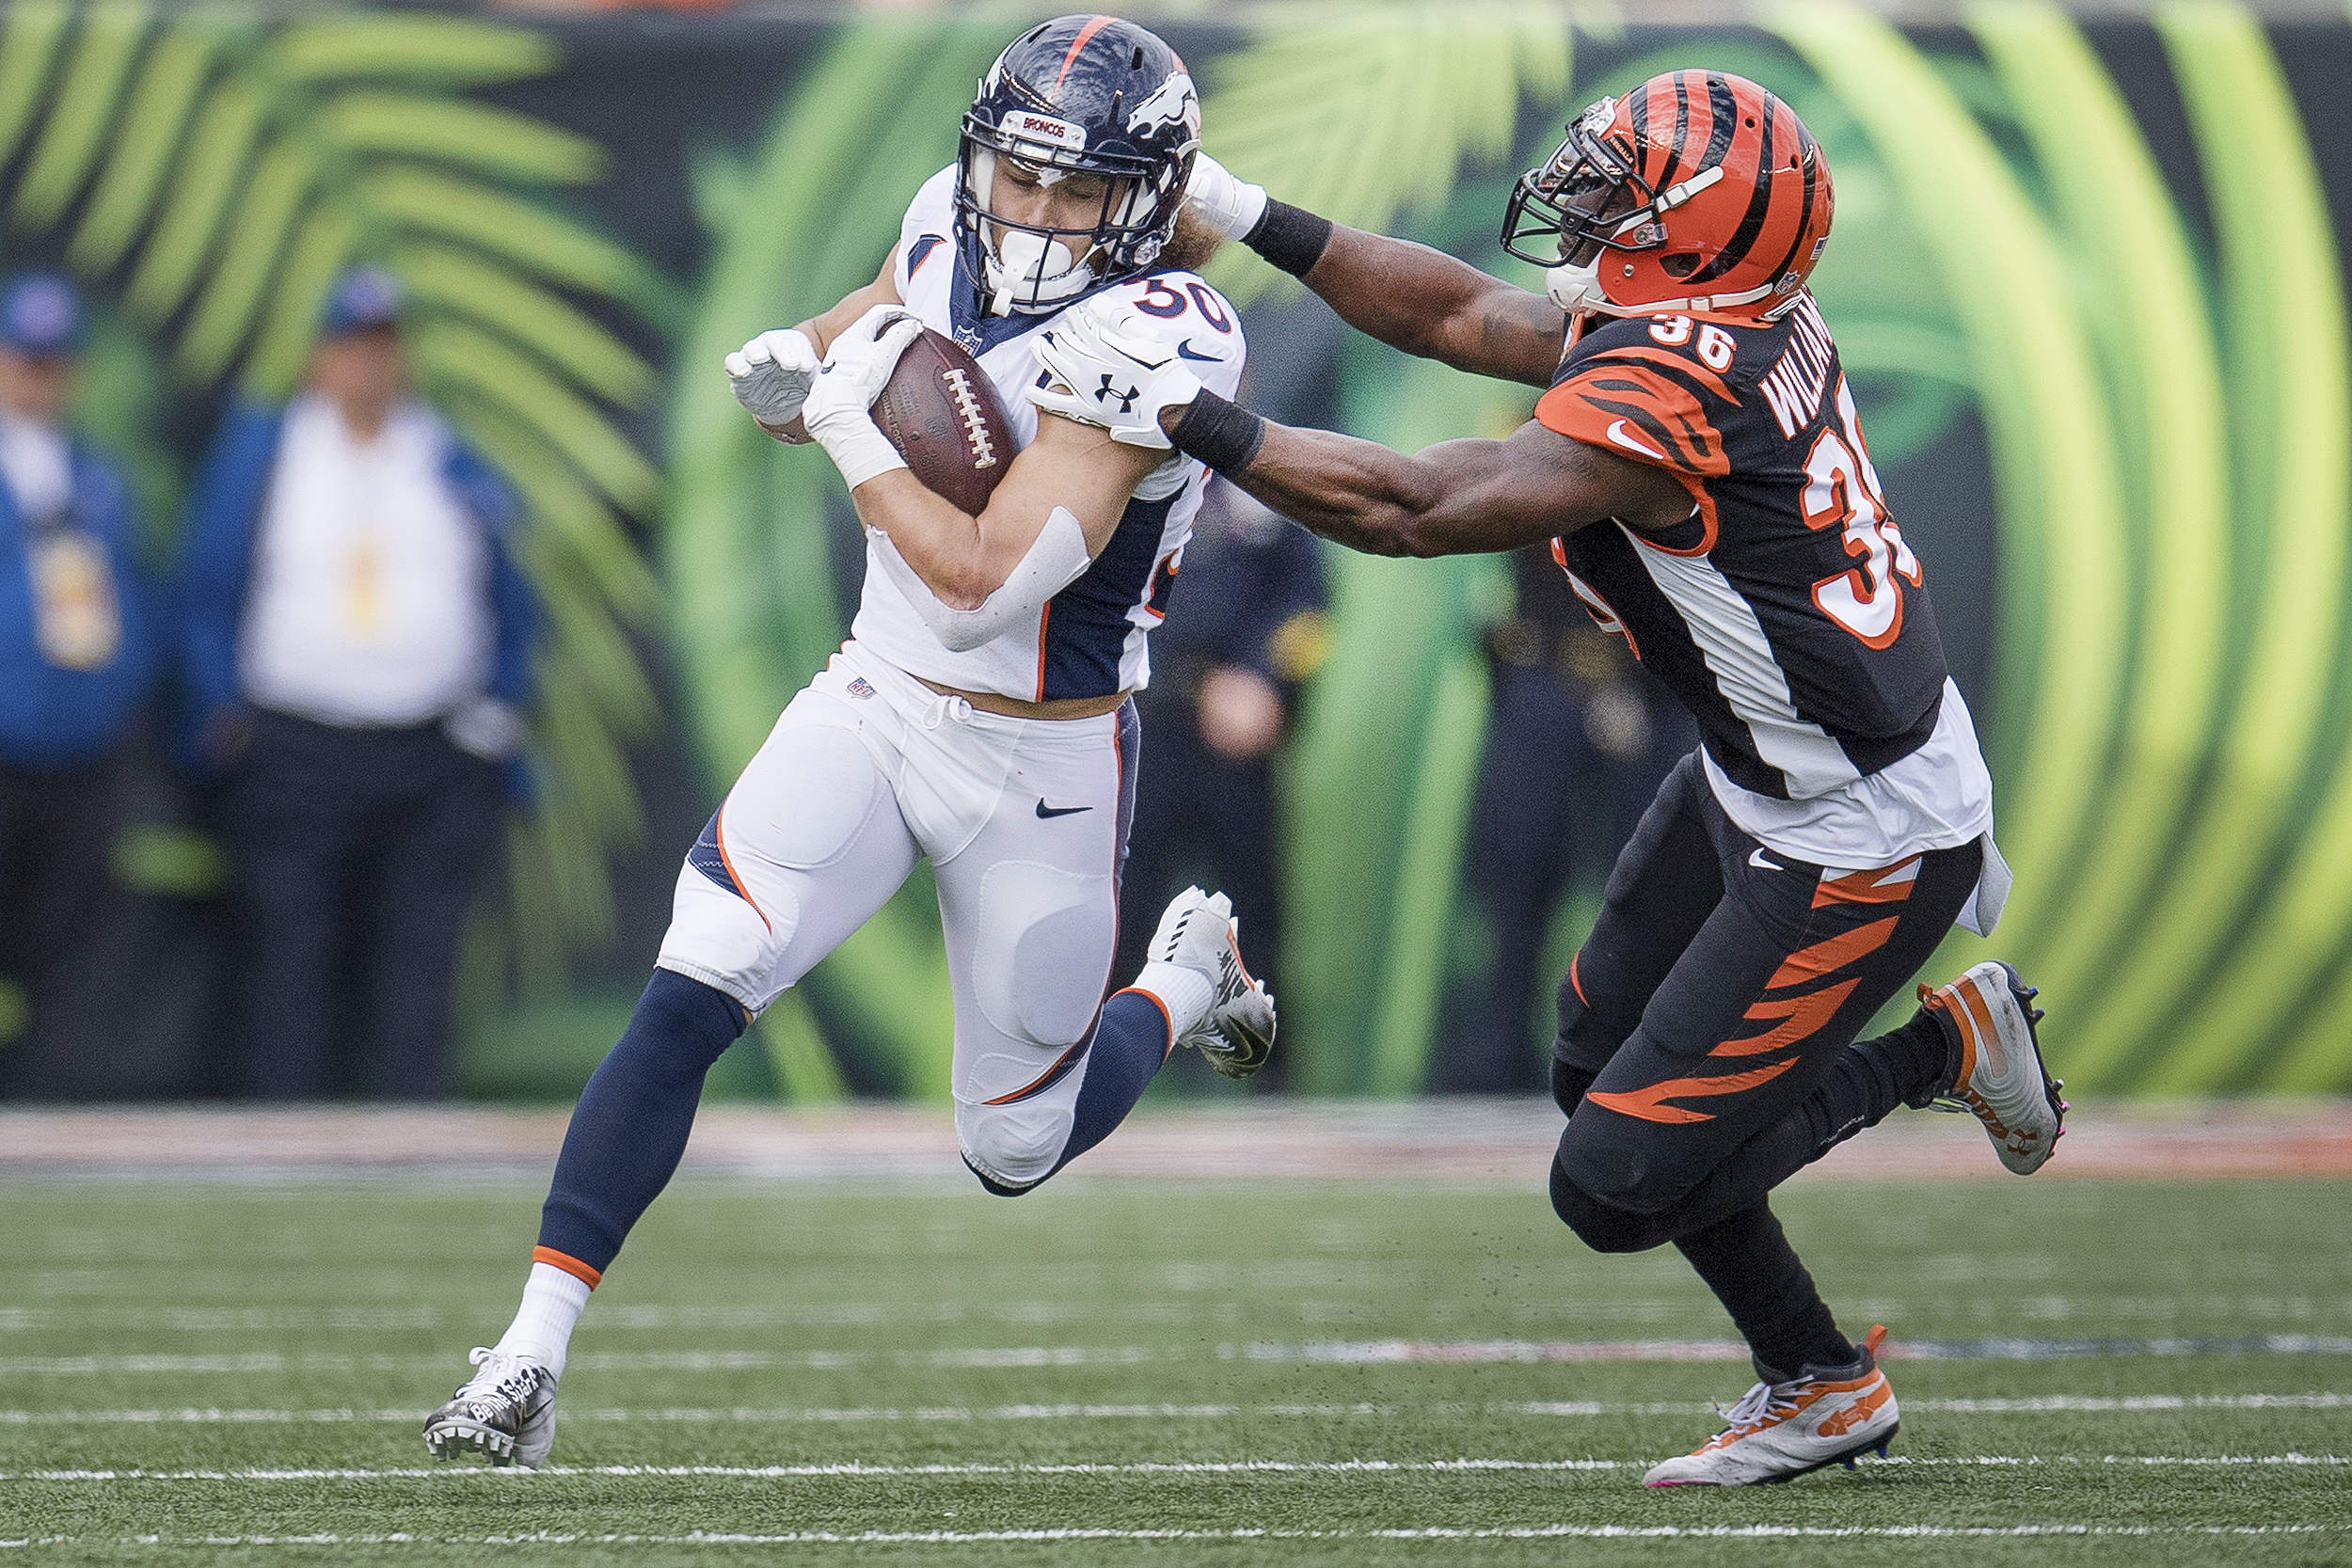 Photo: Phillip Lindsay 1 AP